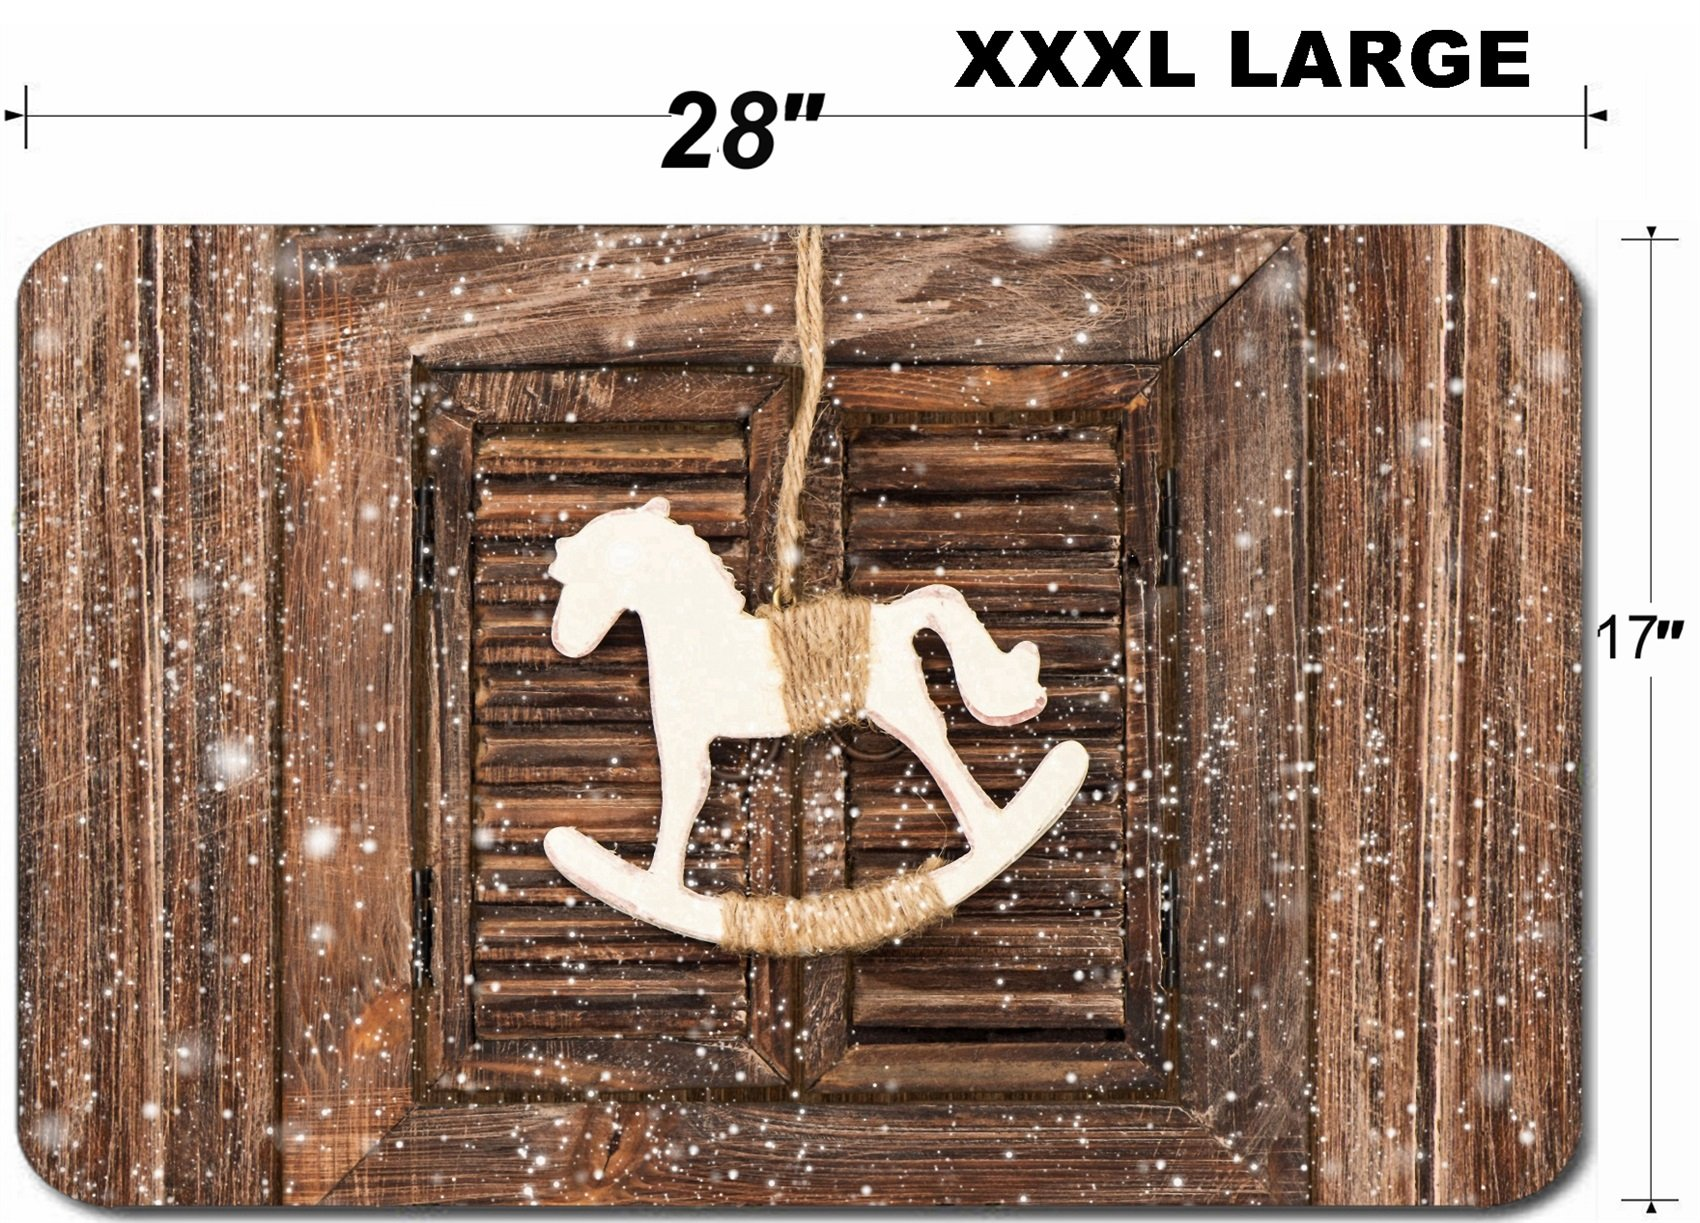 Liili Large Table Mat Non-Slip Natural Rubber Desk Pads IMAGE ID 33334618 christmas decoration rocking horse over wooden window background vintage style picture wi